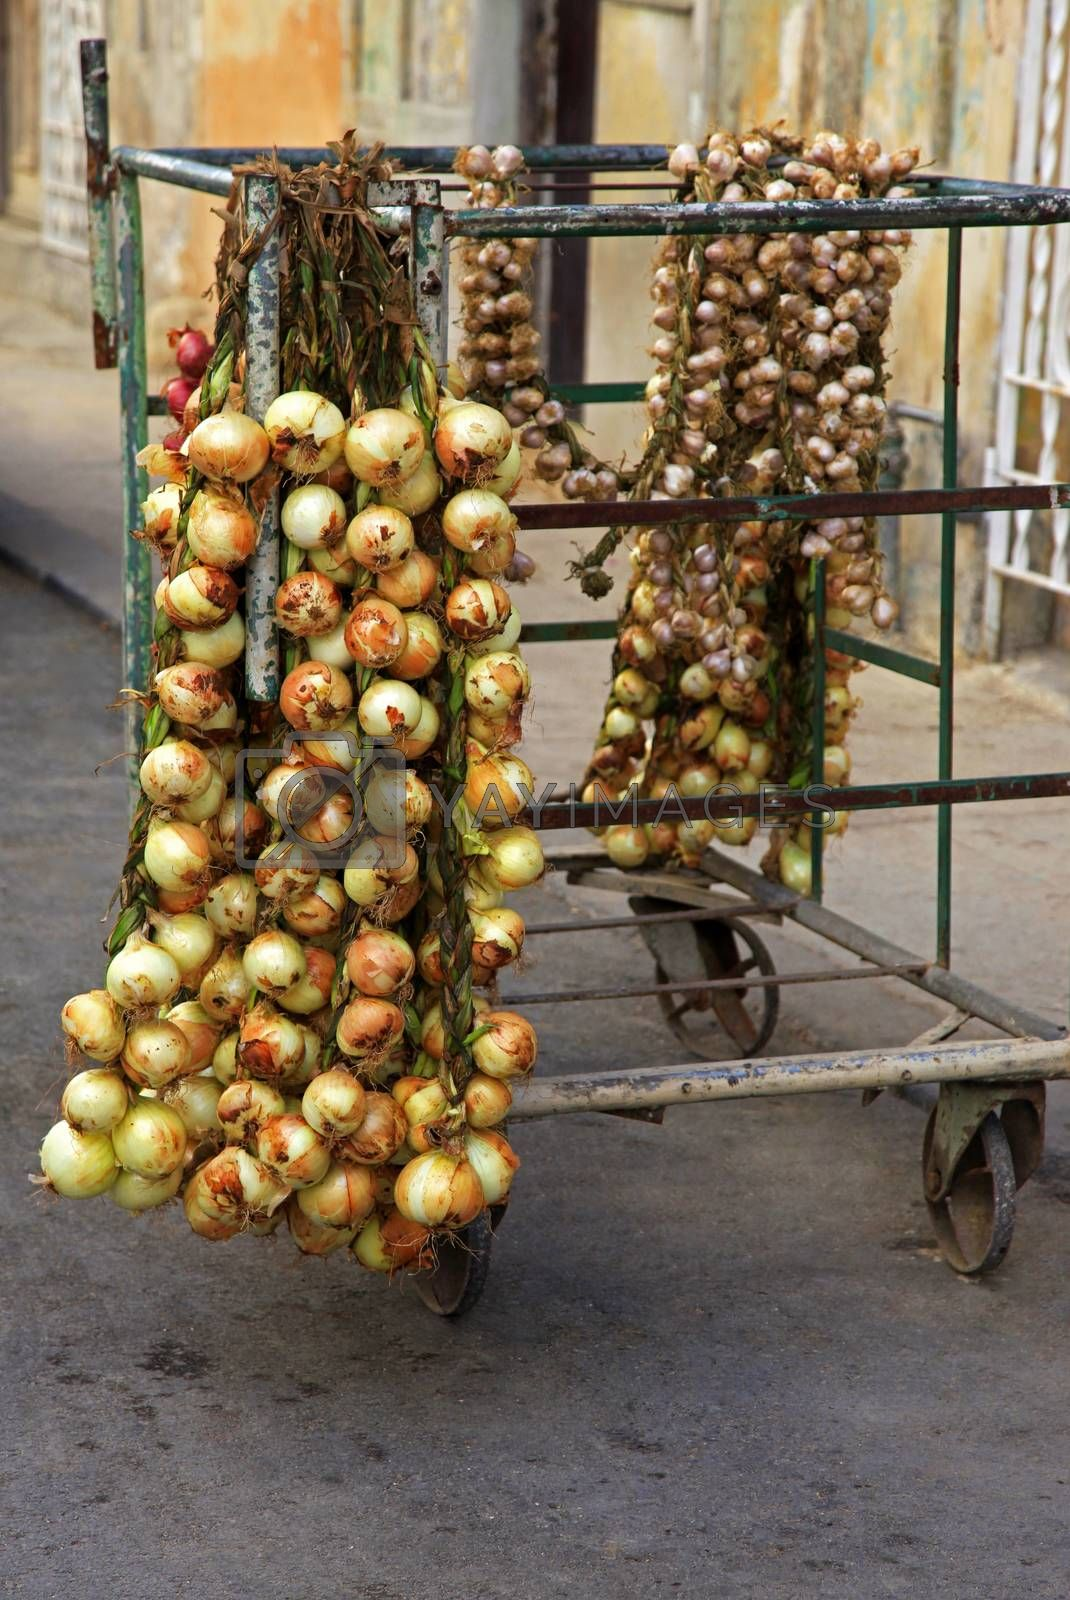 Royalty free image of Selling onions on the street in Old Havana by friday